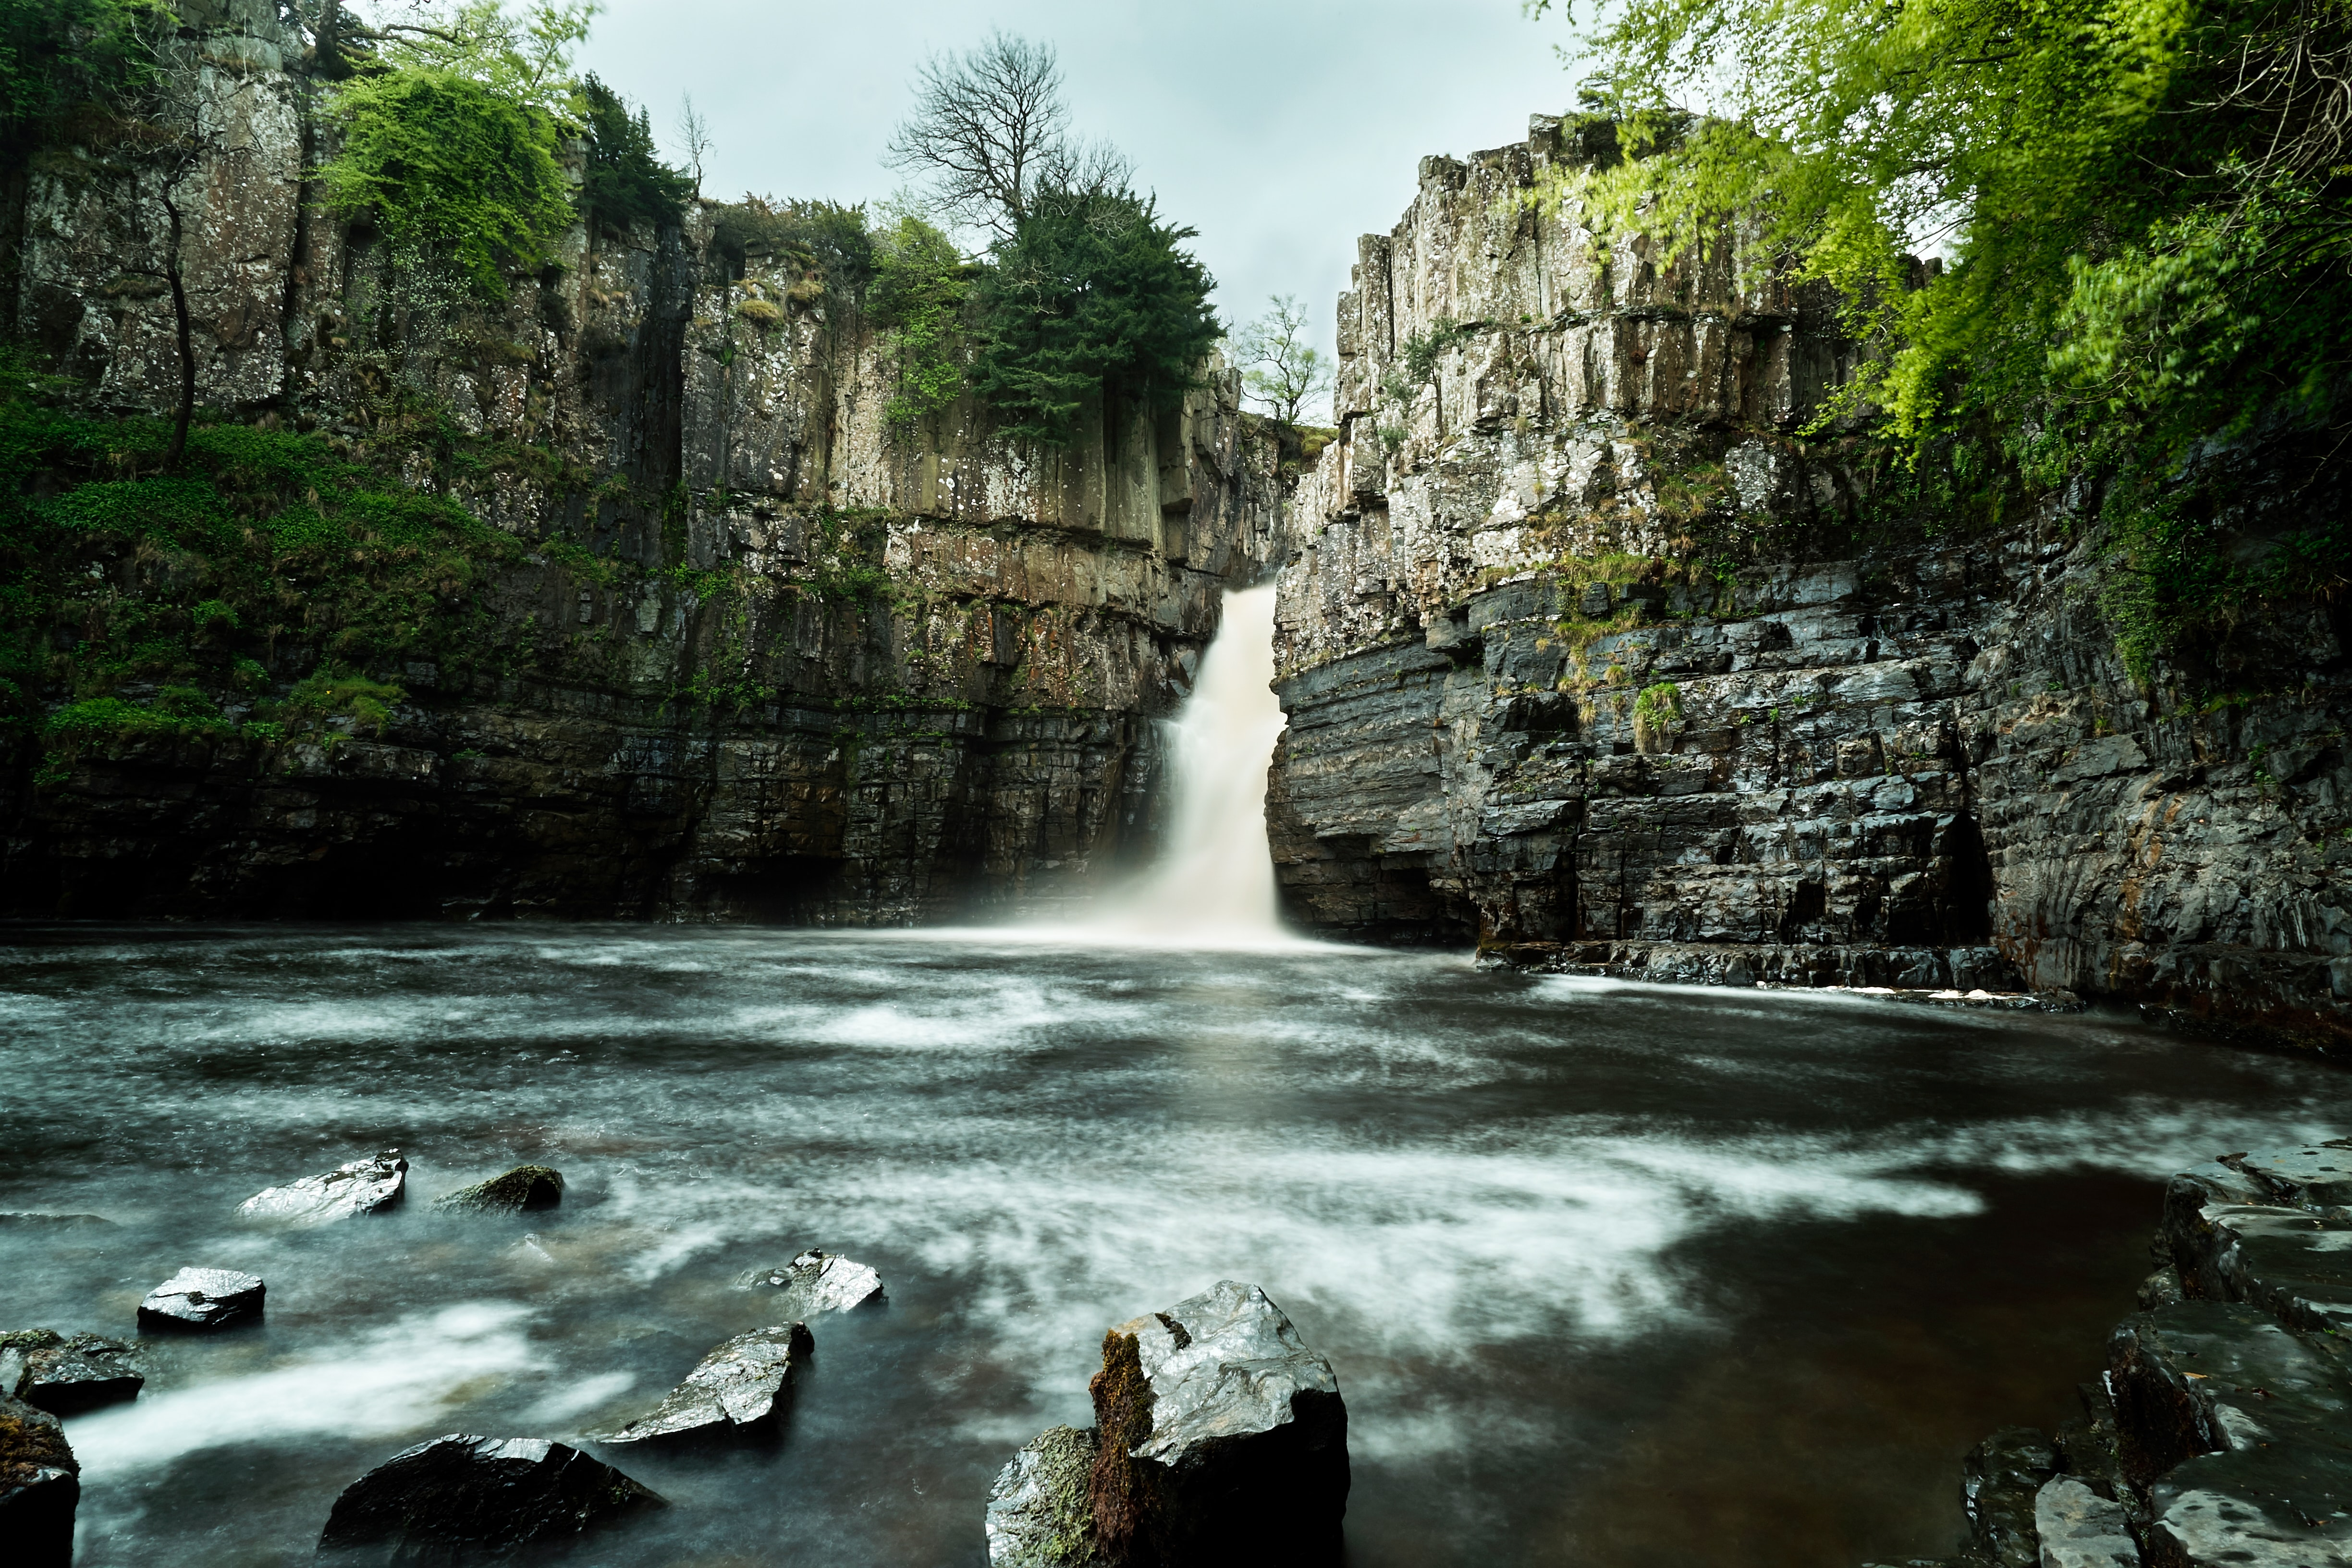 A view of the High Force Waterfall in England, flowing through a canyon and into a gorge